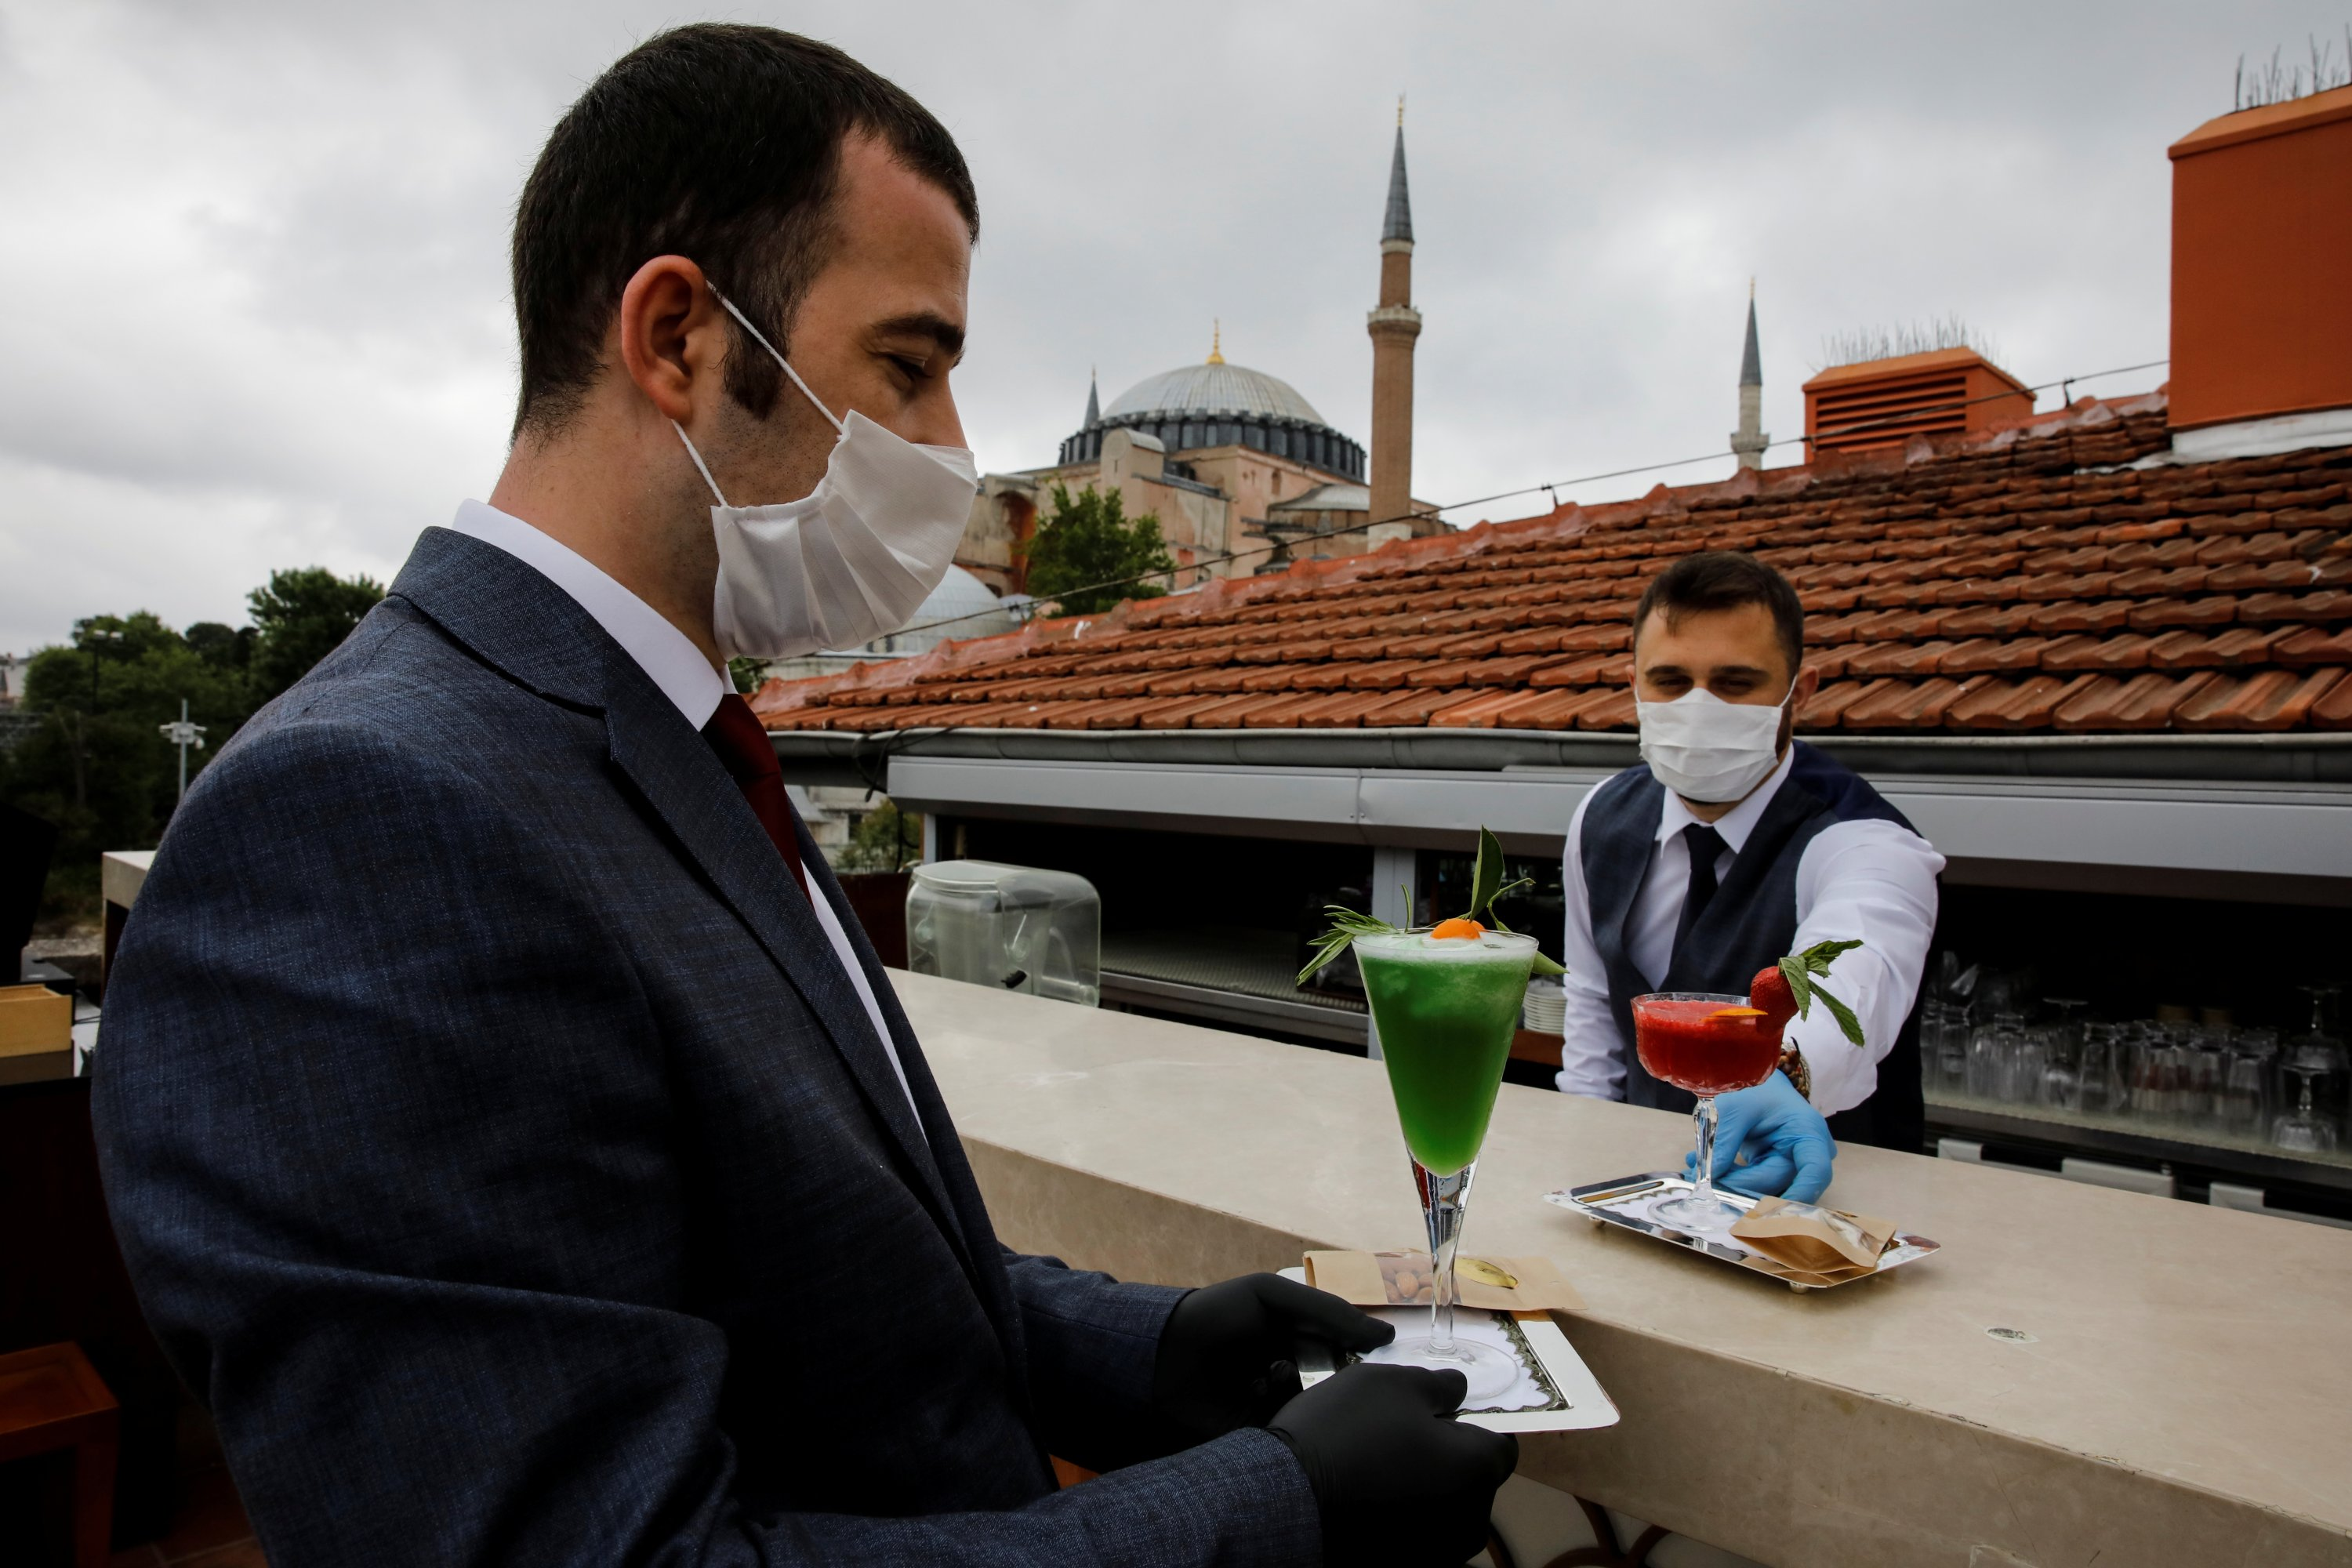 Four Seasons Sultanahmet Hotel staff members practice a service as part of COVID-19 measures in Istanbul, May 21, 2020. (Reuters Photo)